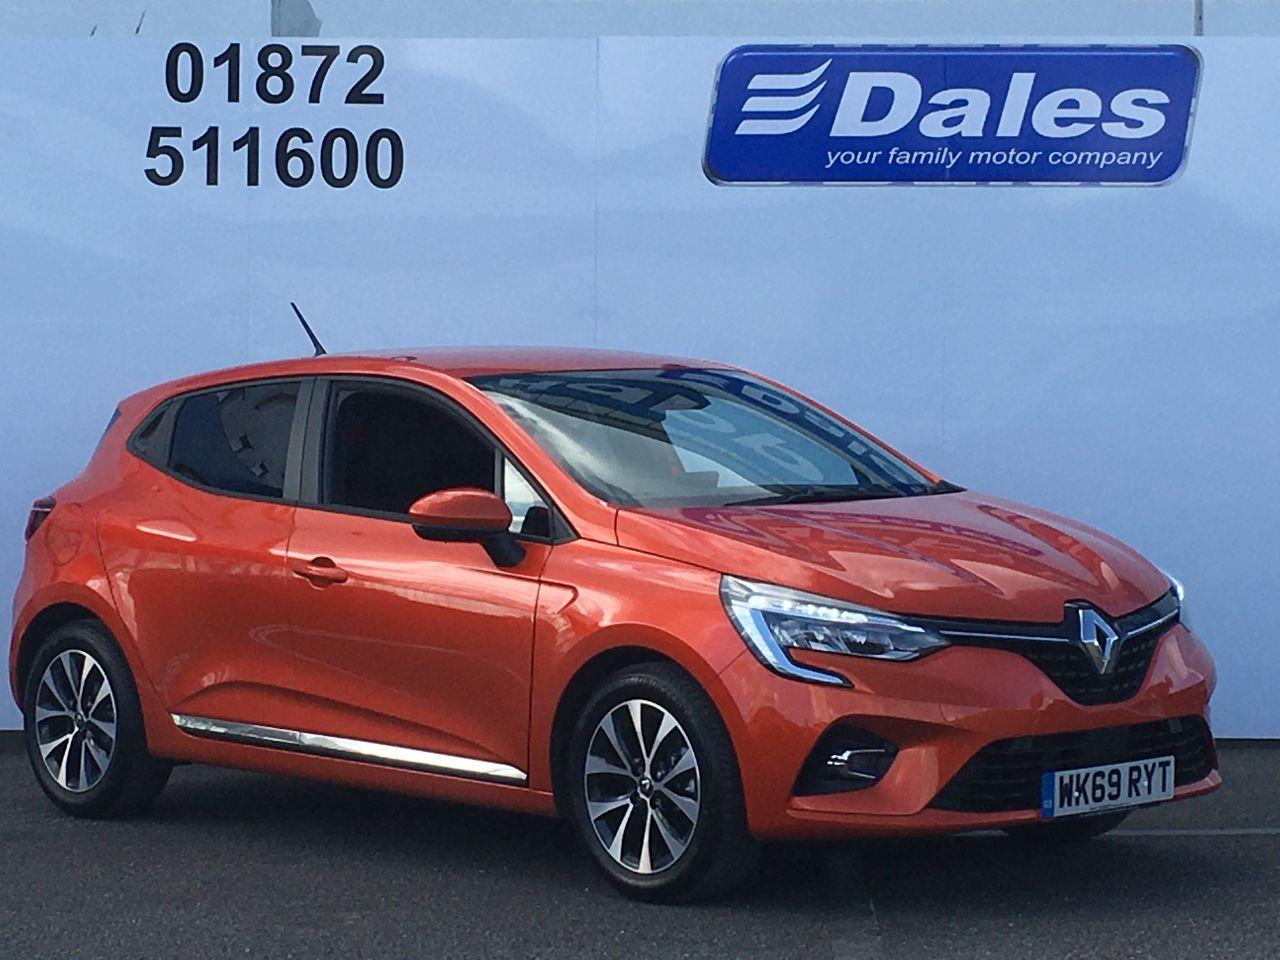 Renault Clio 1.0 CLIO ICONIC TCE Hatchback Petrol Orange